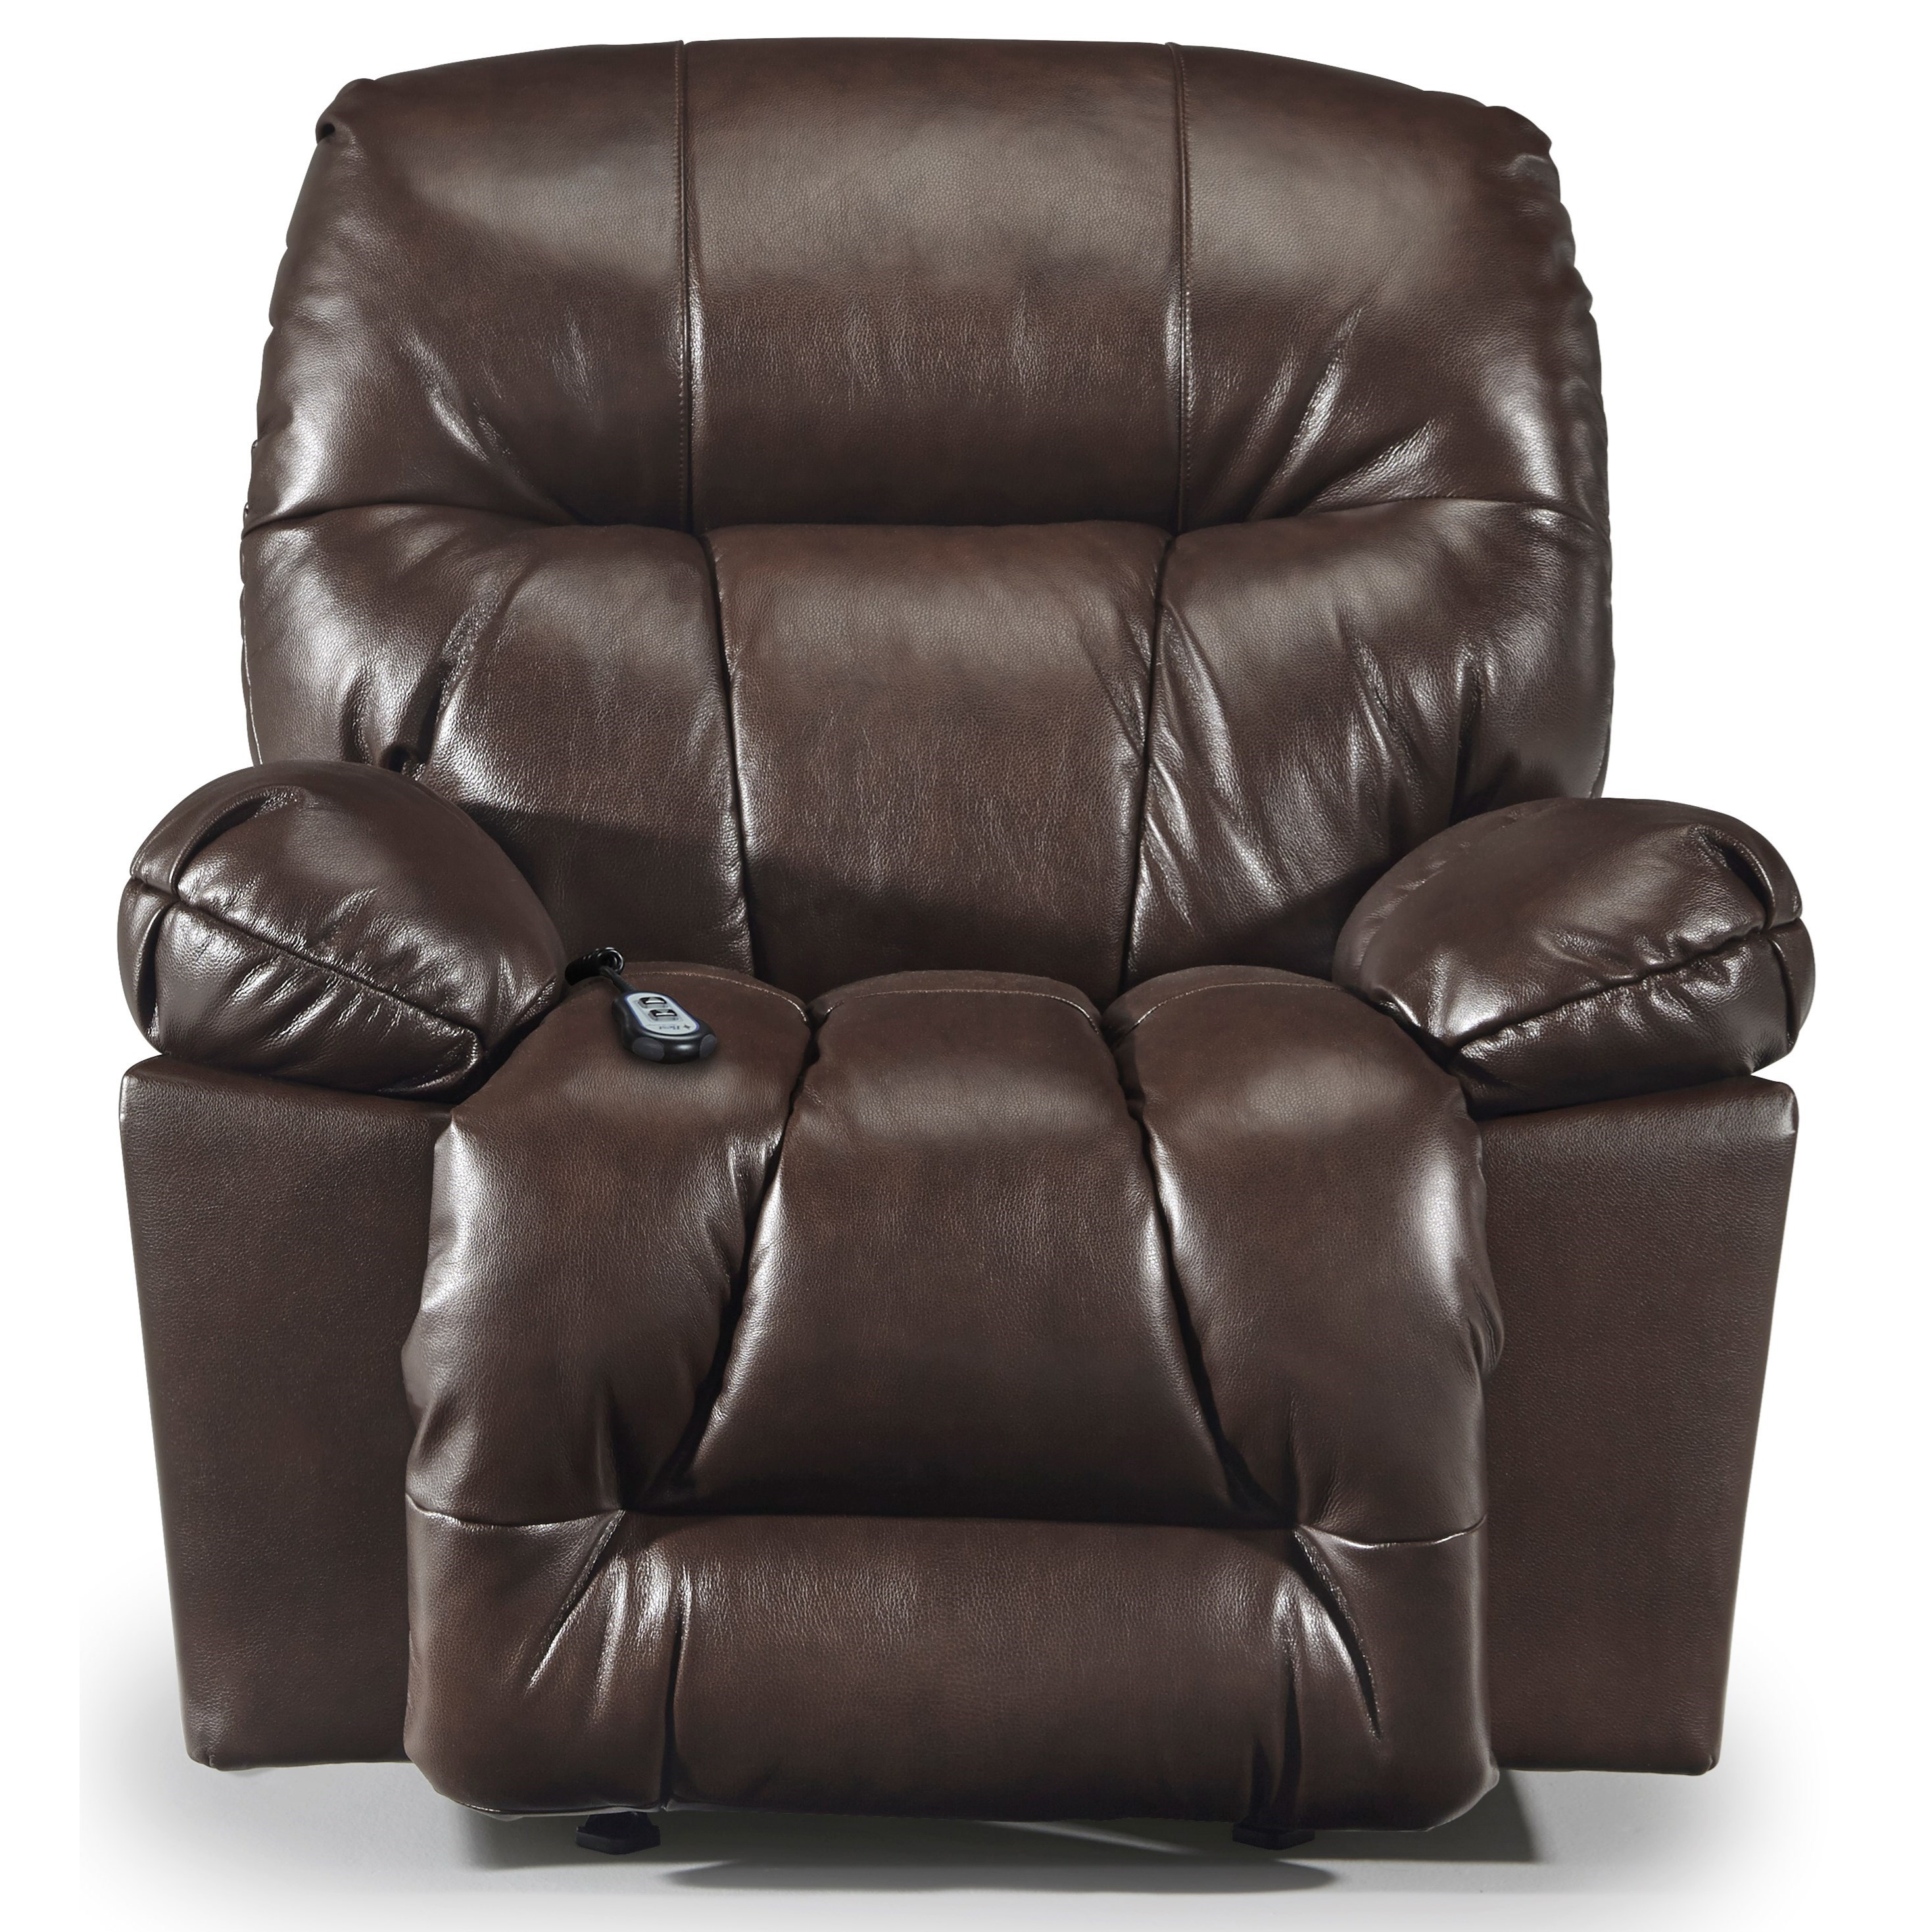 Retreat Power Space Saver Recliner by Best Home Furnishings at Lapeer Furniture & Mattress Center